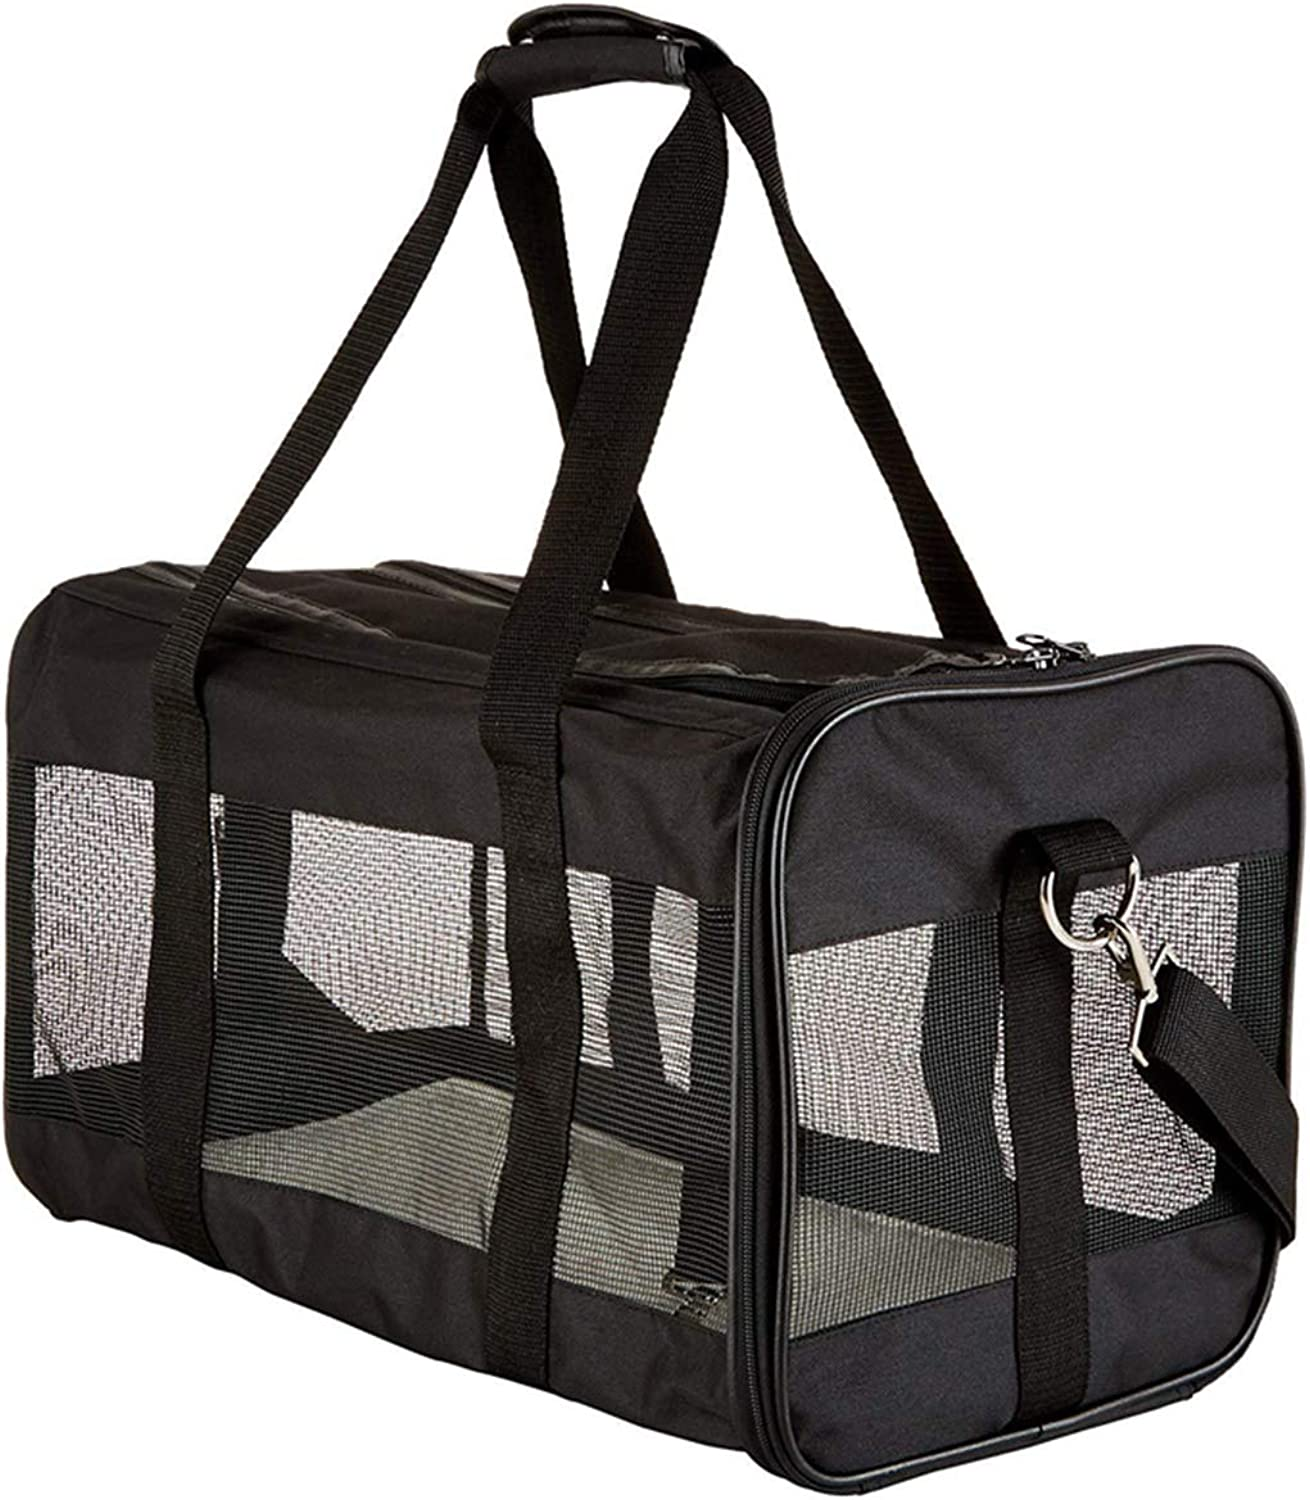 Lightweight Pet Carrier Crate,Shoulder Travel Bag Outdoor Pouch Mesh Shoulder Carry Bag Tote Handbag,Black,43  24  26cm